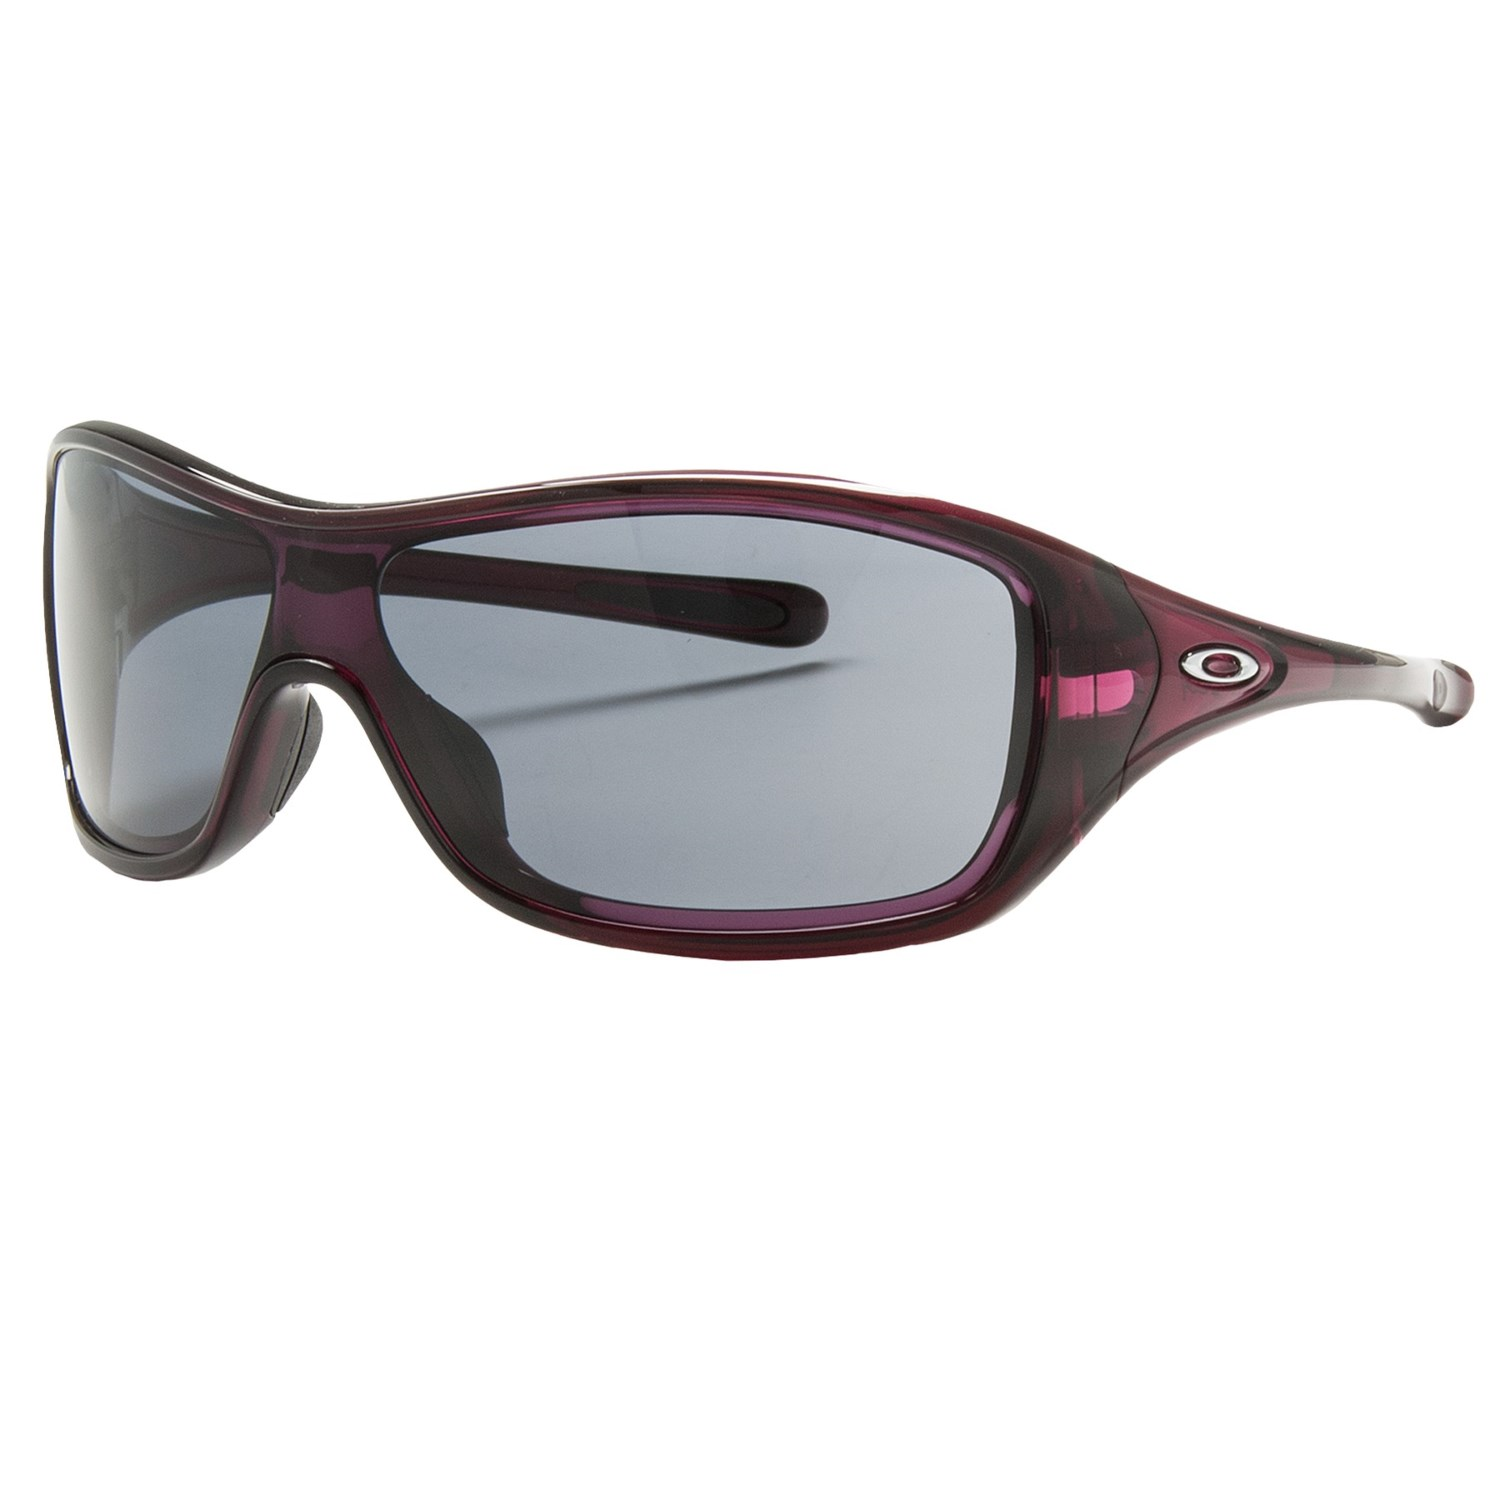 b859915372 Oakley For Woman « Heritage Malta